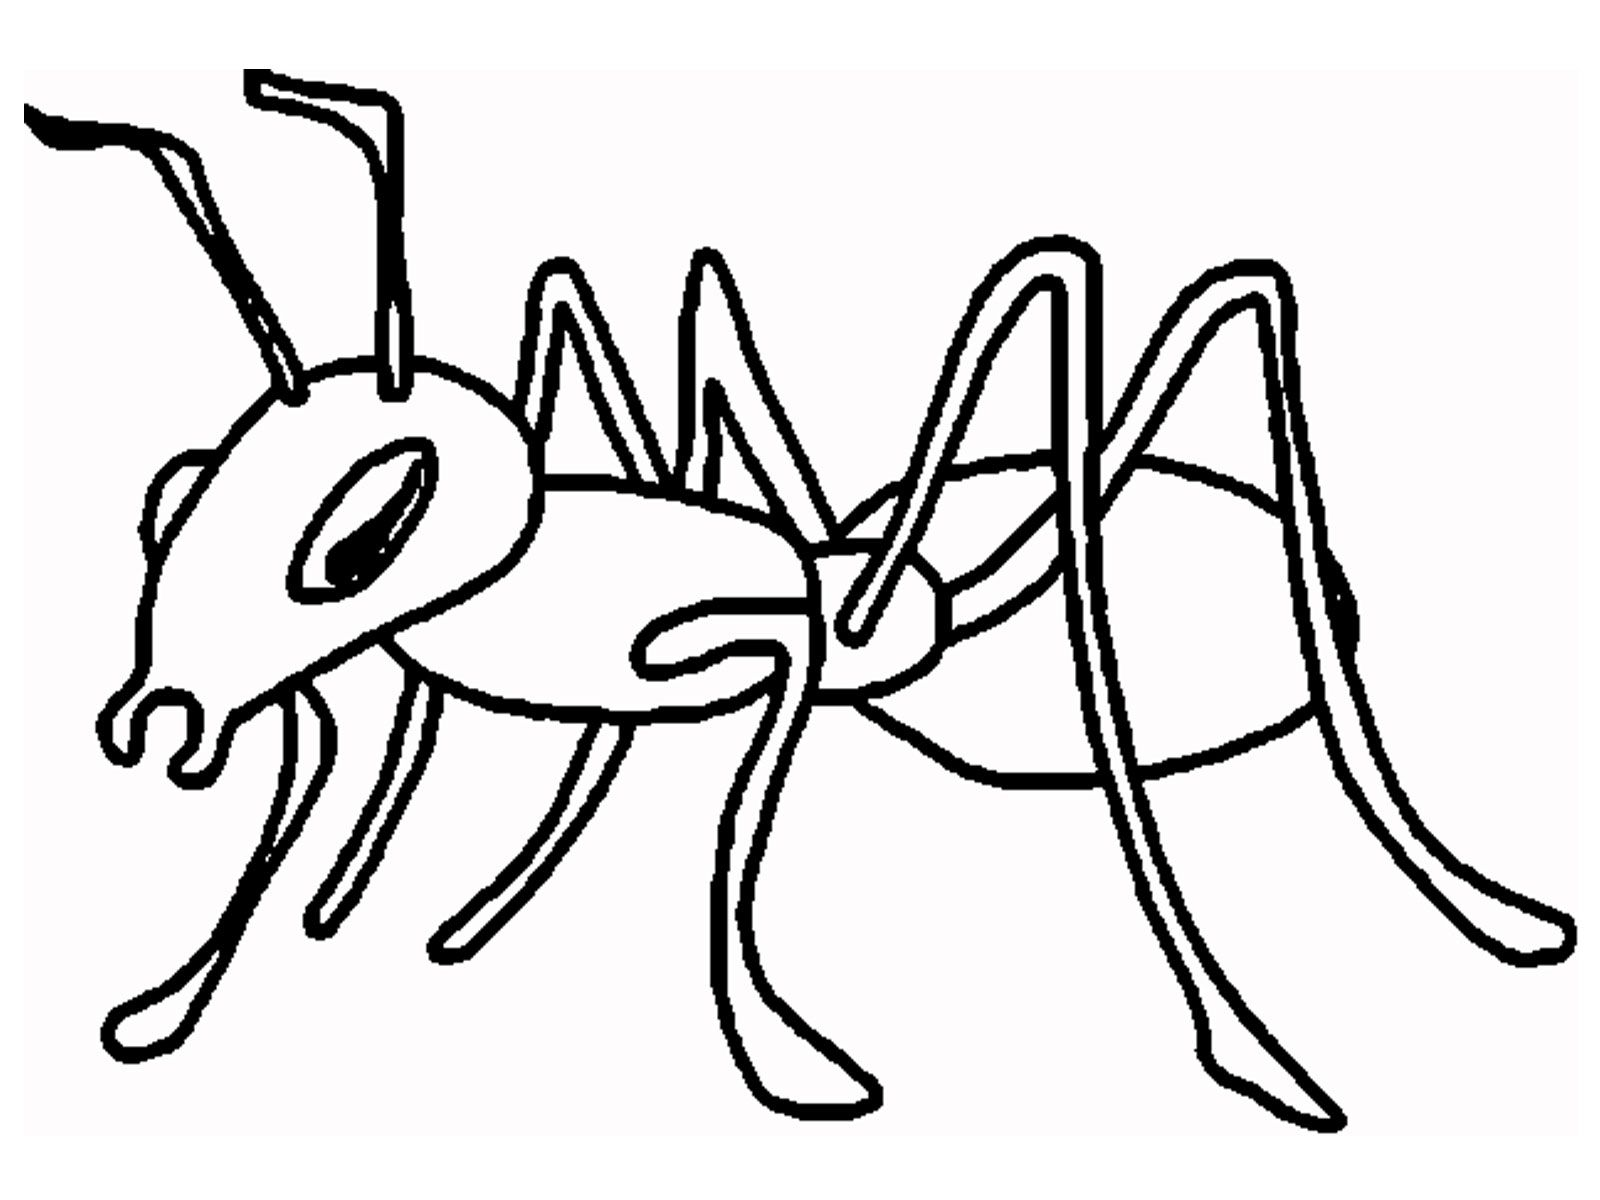 Ant coloring cartoon and. Ants clipart colouring page